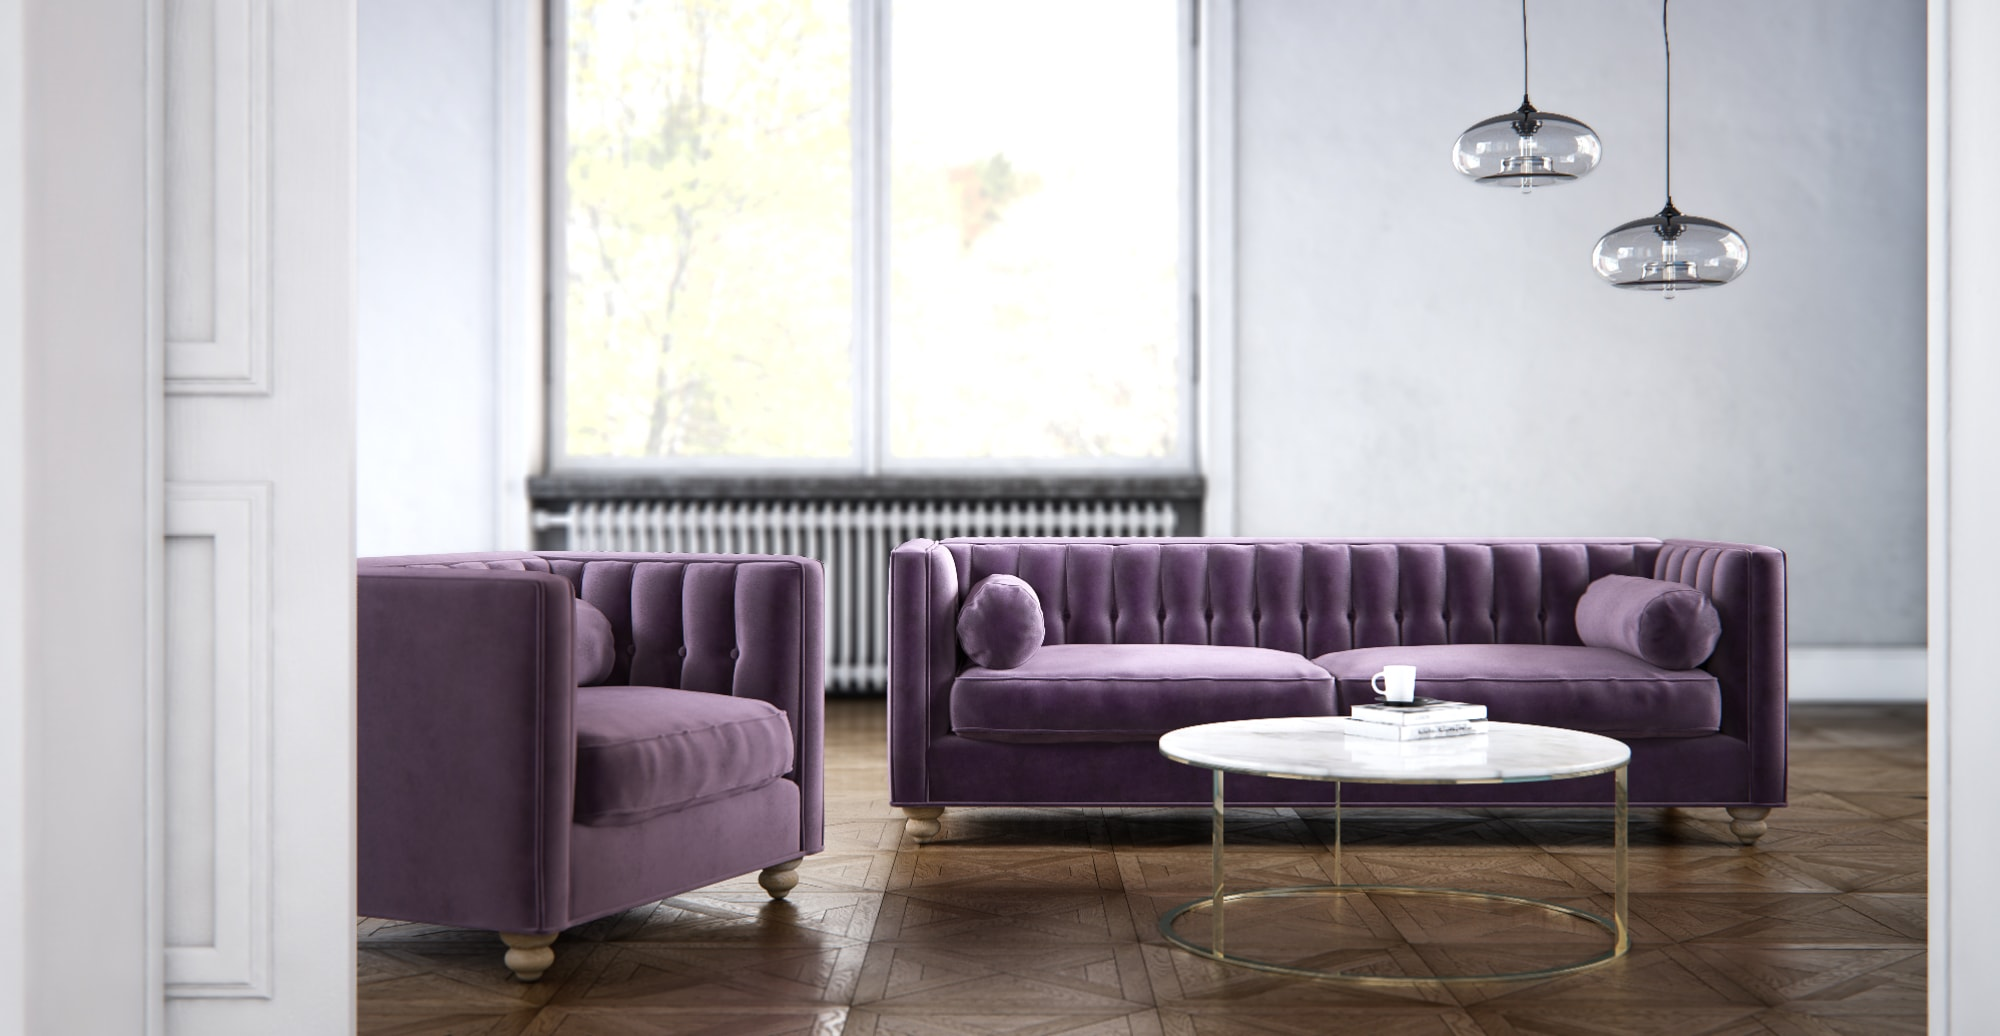 Main differences while contemporary furniture